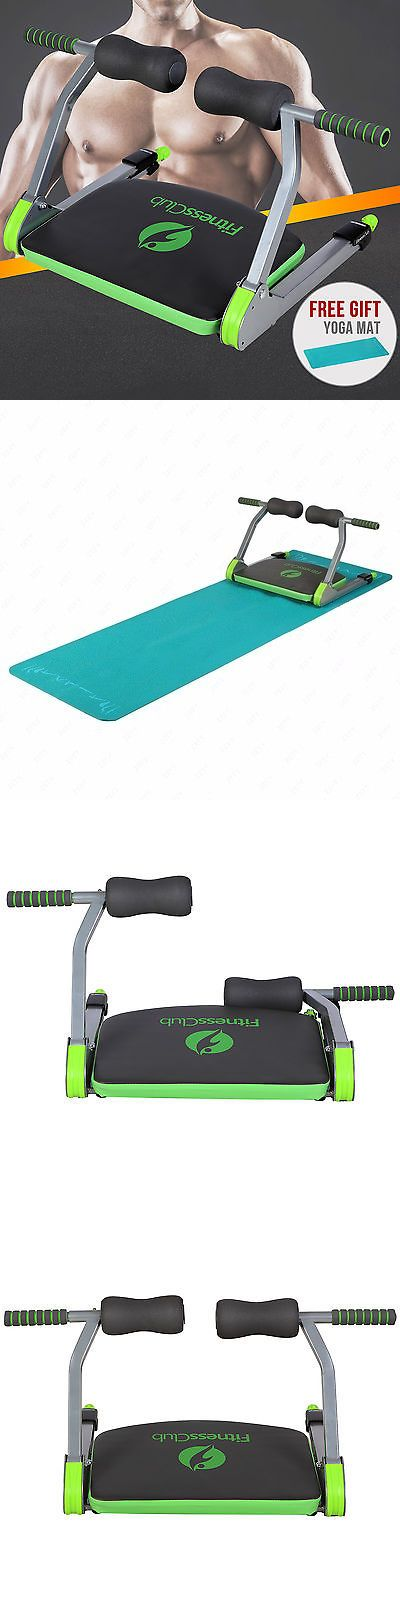 Abdominal Exercisers 15274: Ab Machine Total Workout Fitness Abdominal Exercise W/ Yoga Mat And Dvd Home Gym BUY IT NOW ONLY: $35.9